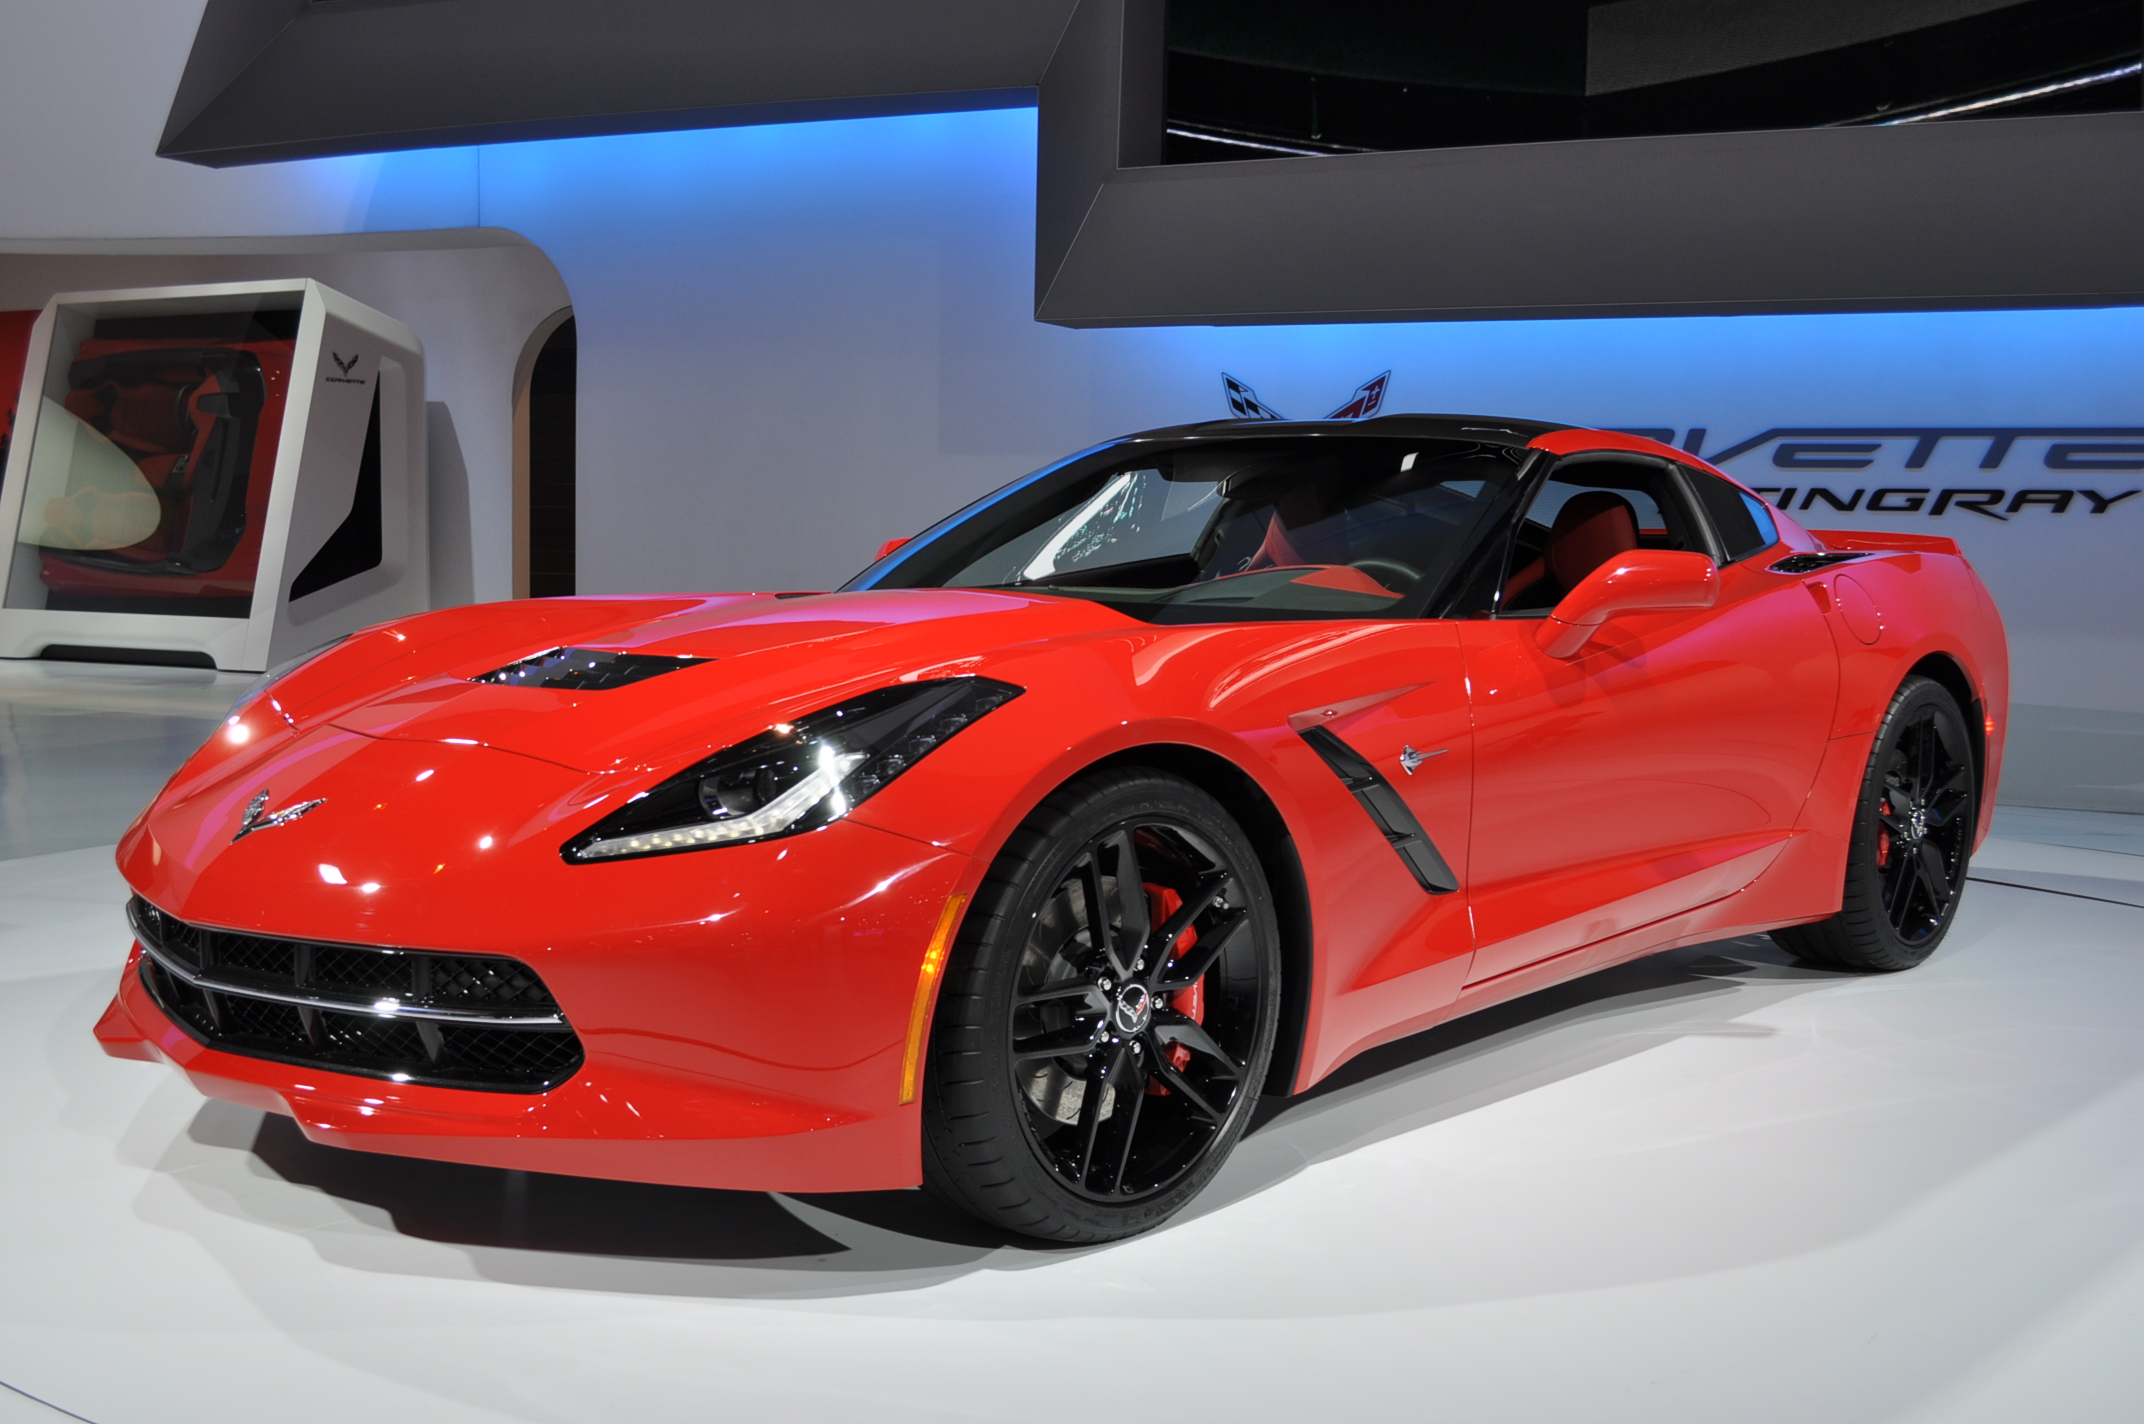 2014 Chevrolet Corvette Stingray EPA Rated: 29 MPG Hwy, 21 MPG Combined